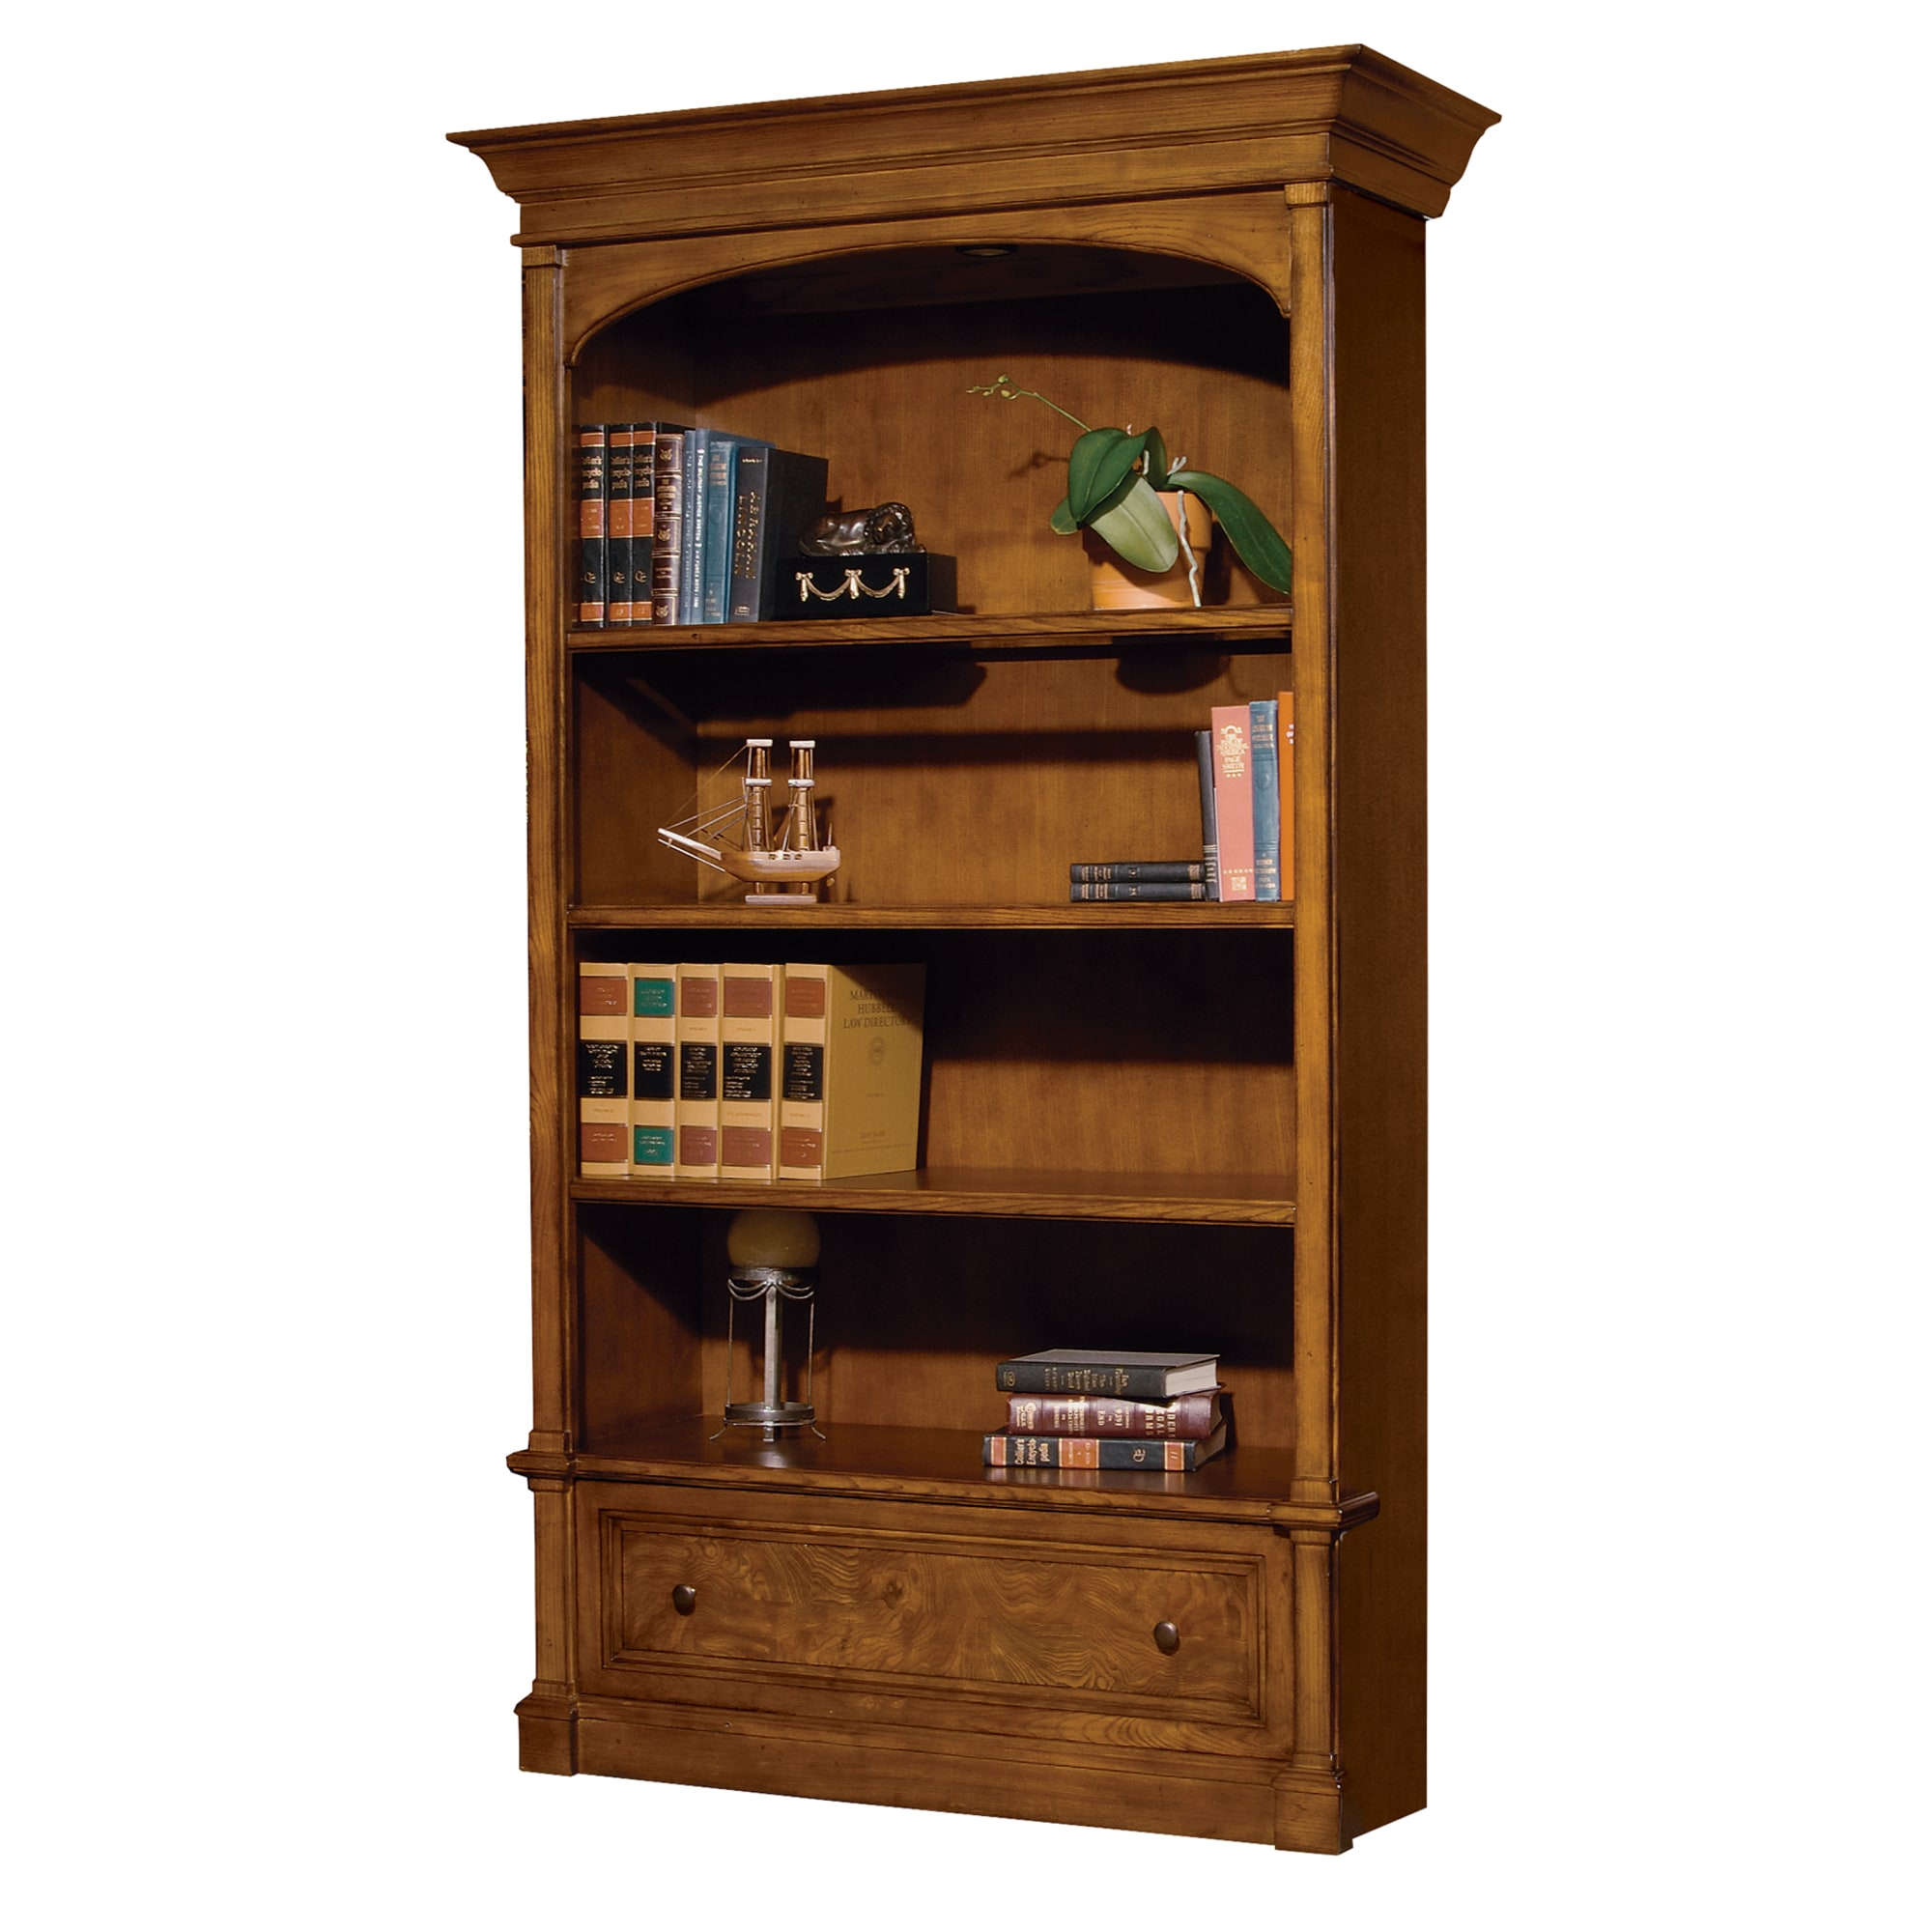 Image for 7-9104 office@home Urban Ash Bookcase from Hekman Official Website